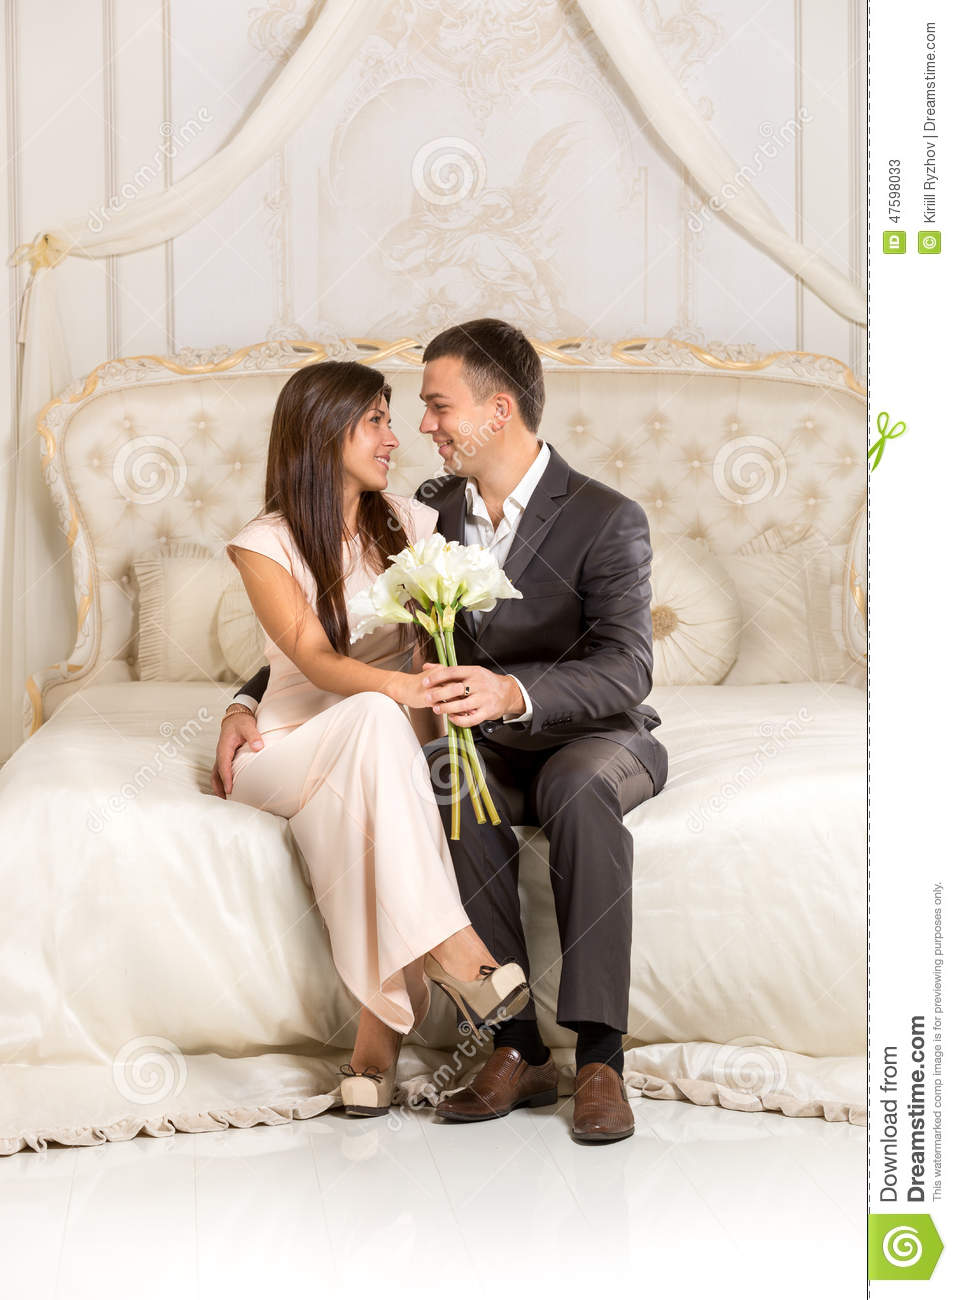 Romantic Couple In Love Sitting On Bed In Luxurious Room